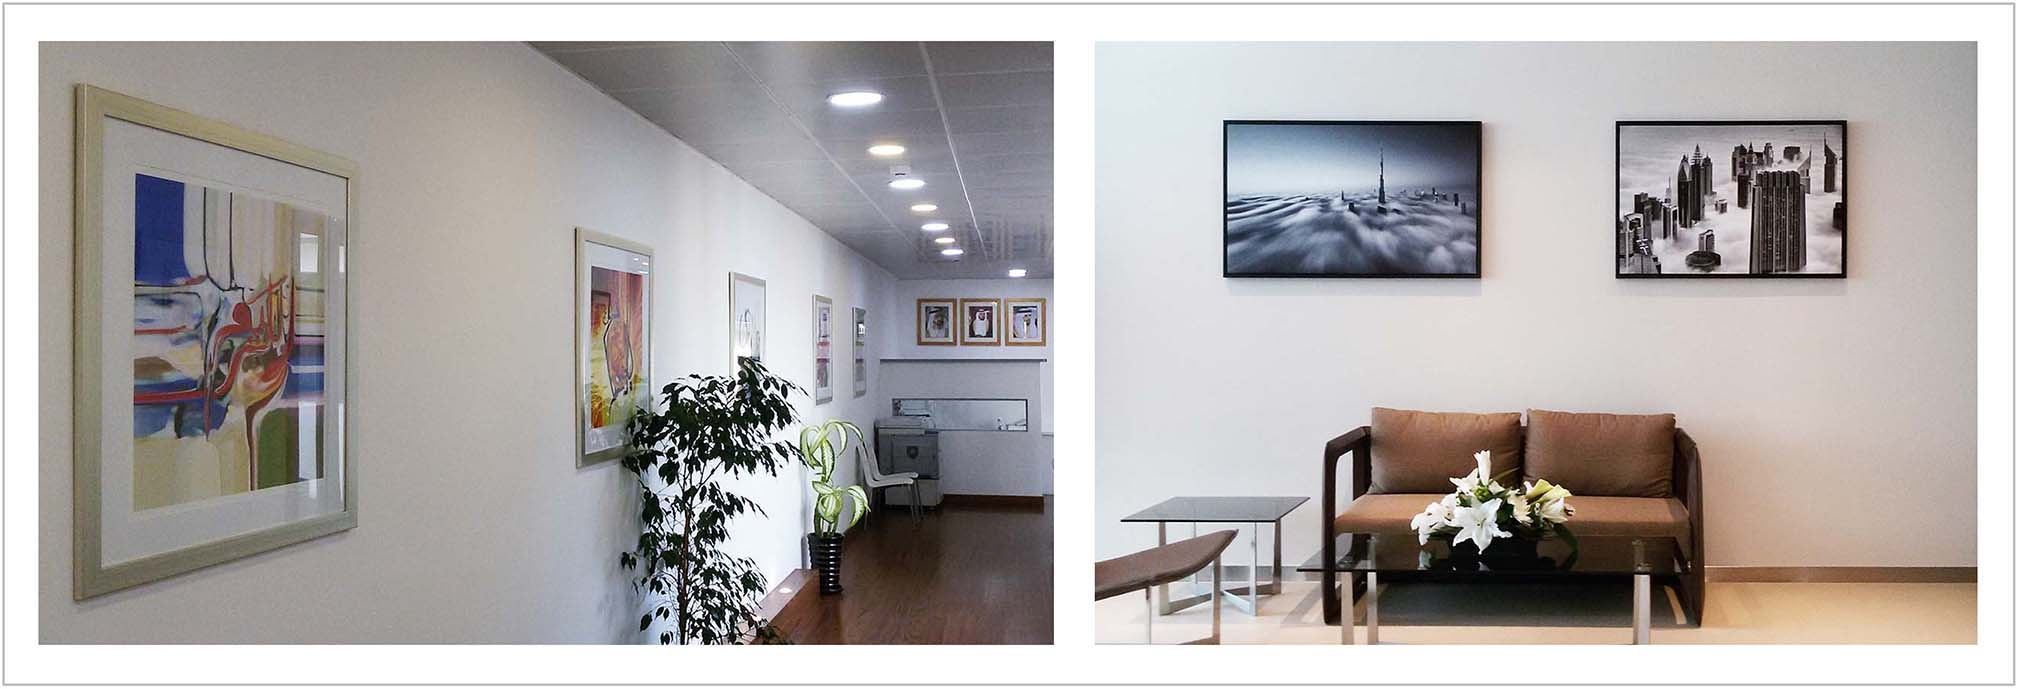 Office decoration examples